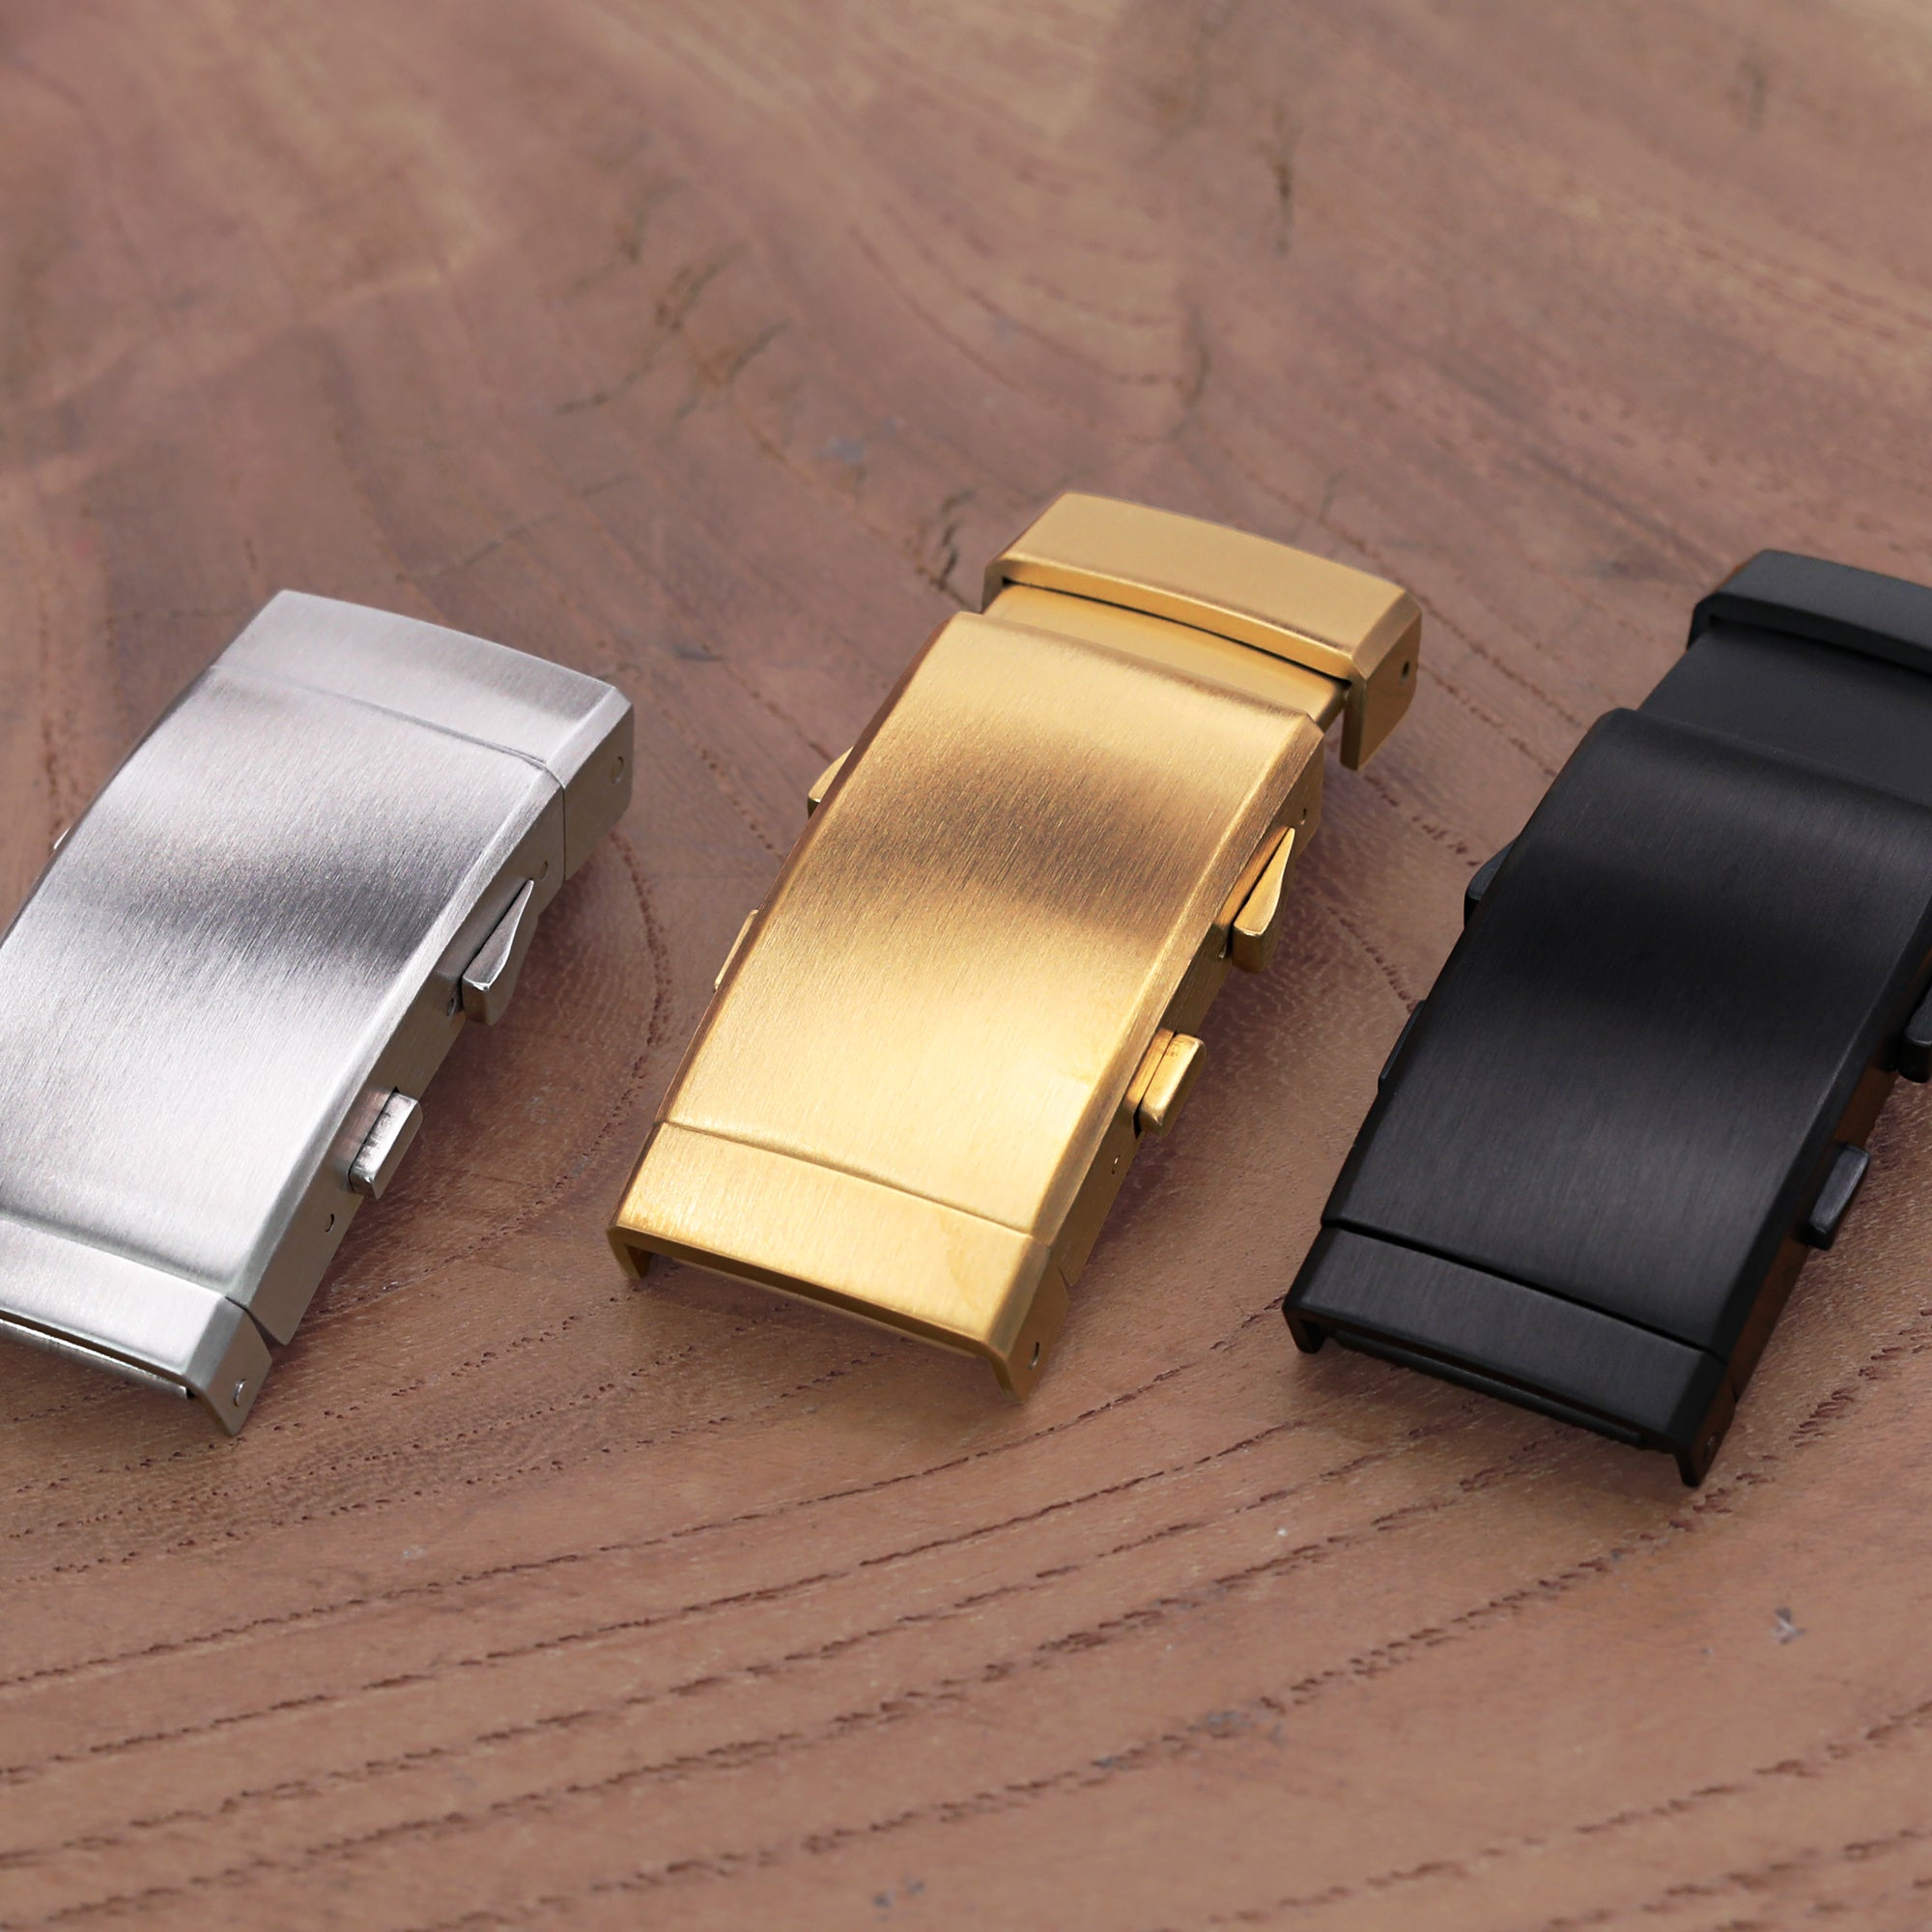 18mm 316L Stainless Steel Wetsuit Ratchet Buckle Button Control diver extension clasp Brushed IP Gold Strapcode Buckles